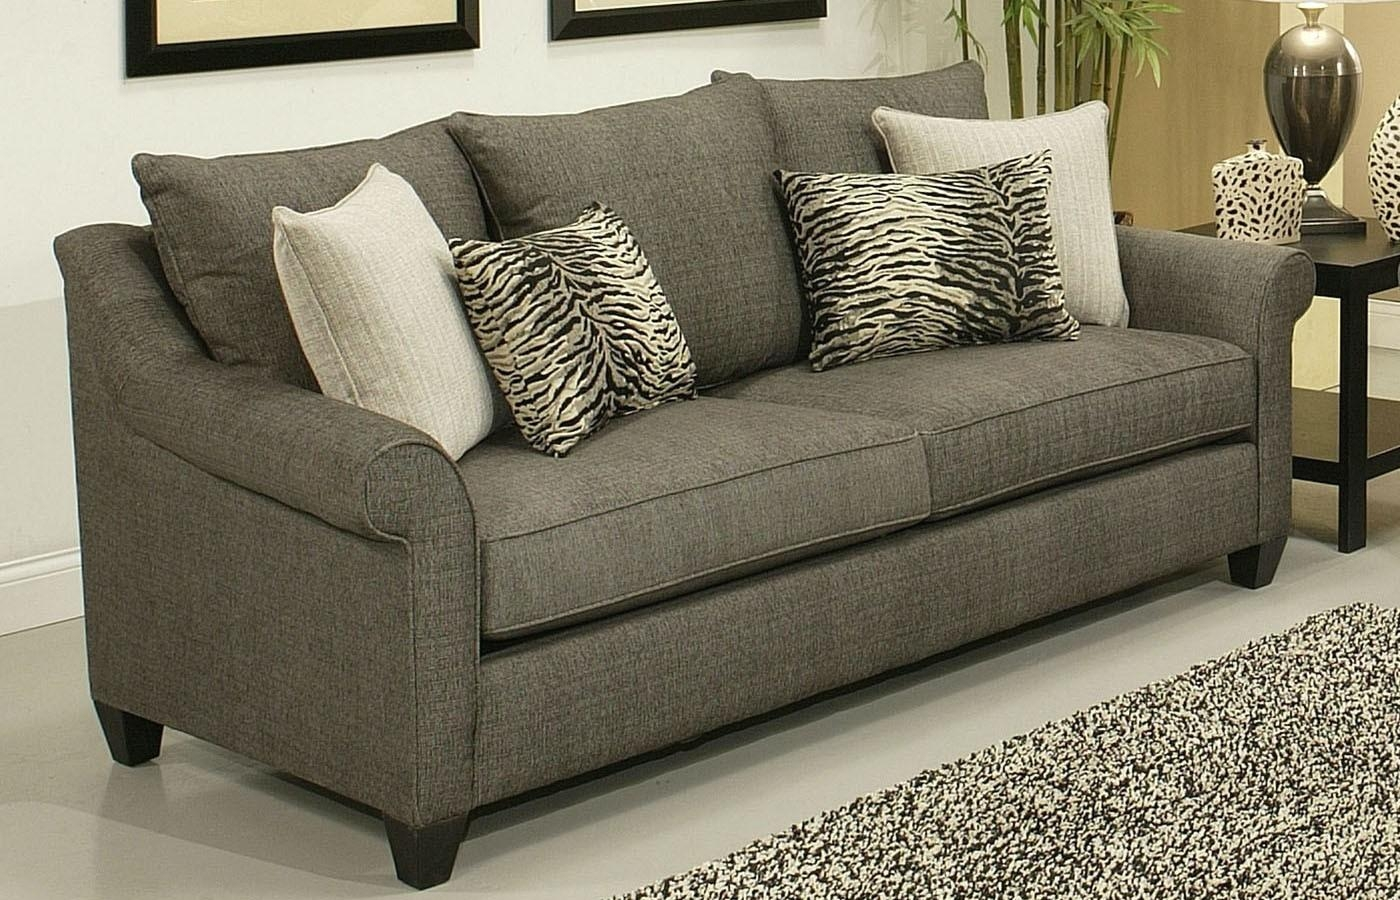 latest sofa designs pictures 2018 bed without arms orange county ideas